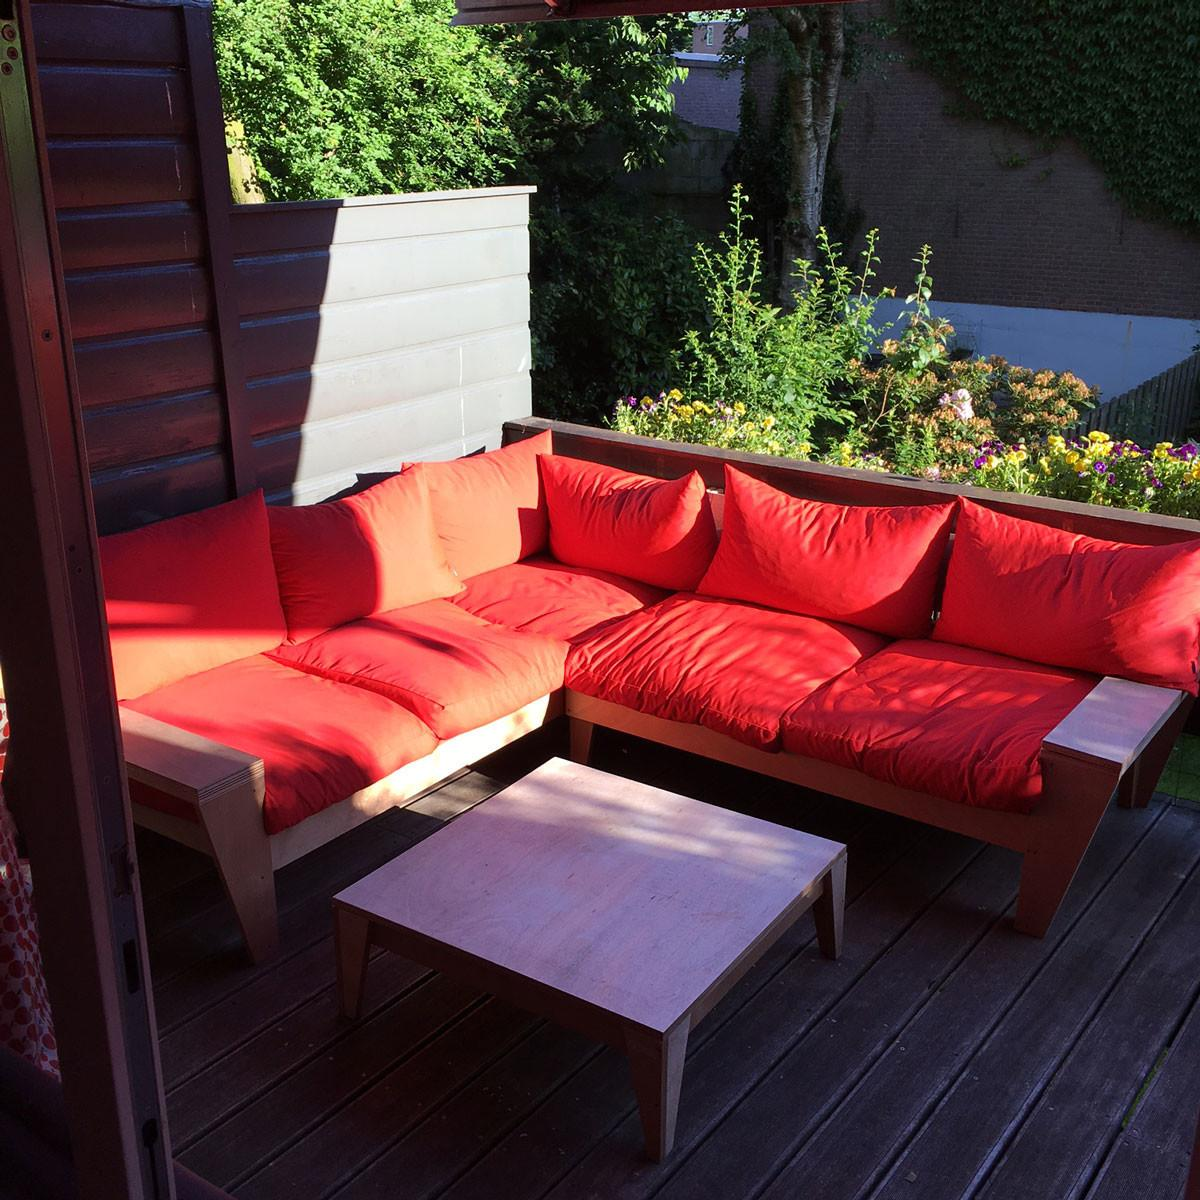 Furniture Plan Outdoor Sofa Set Yelmoxl Dutch Design